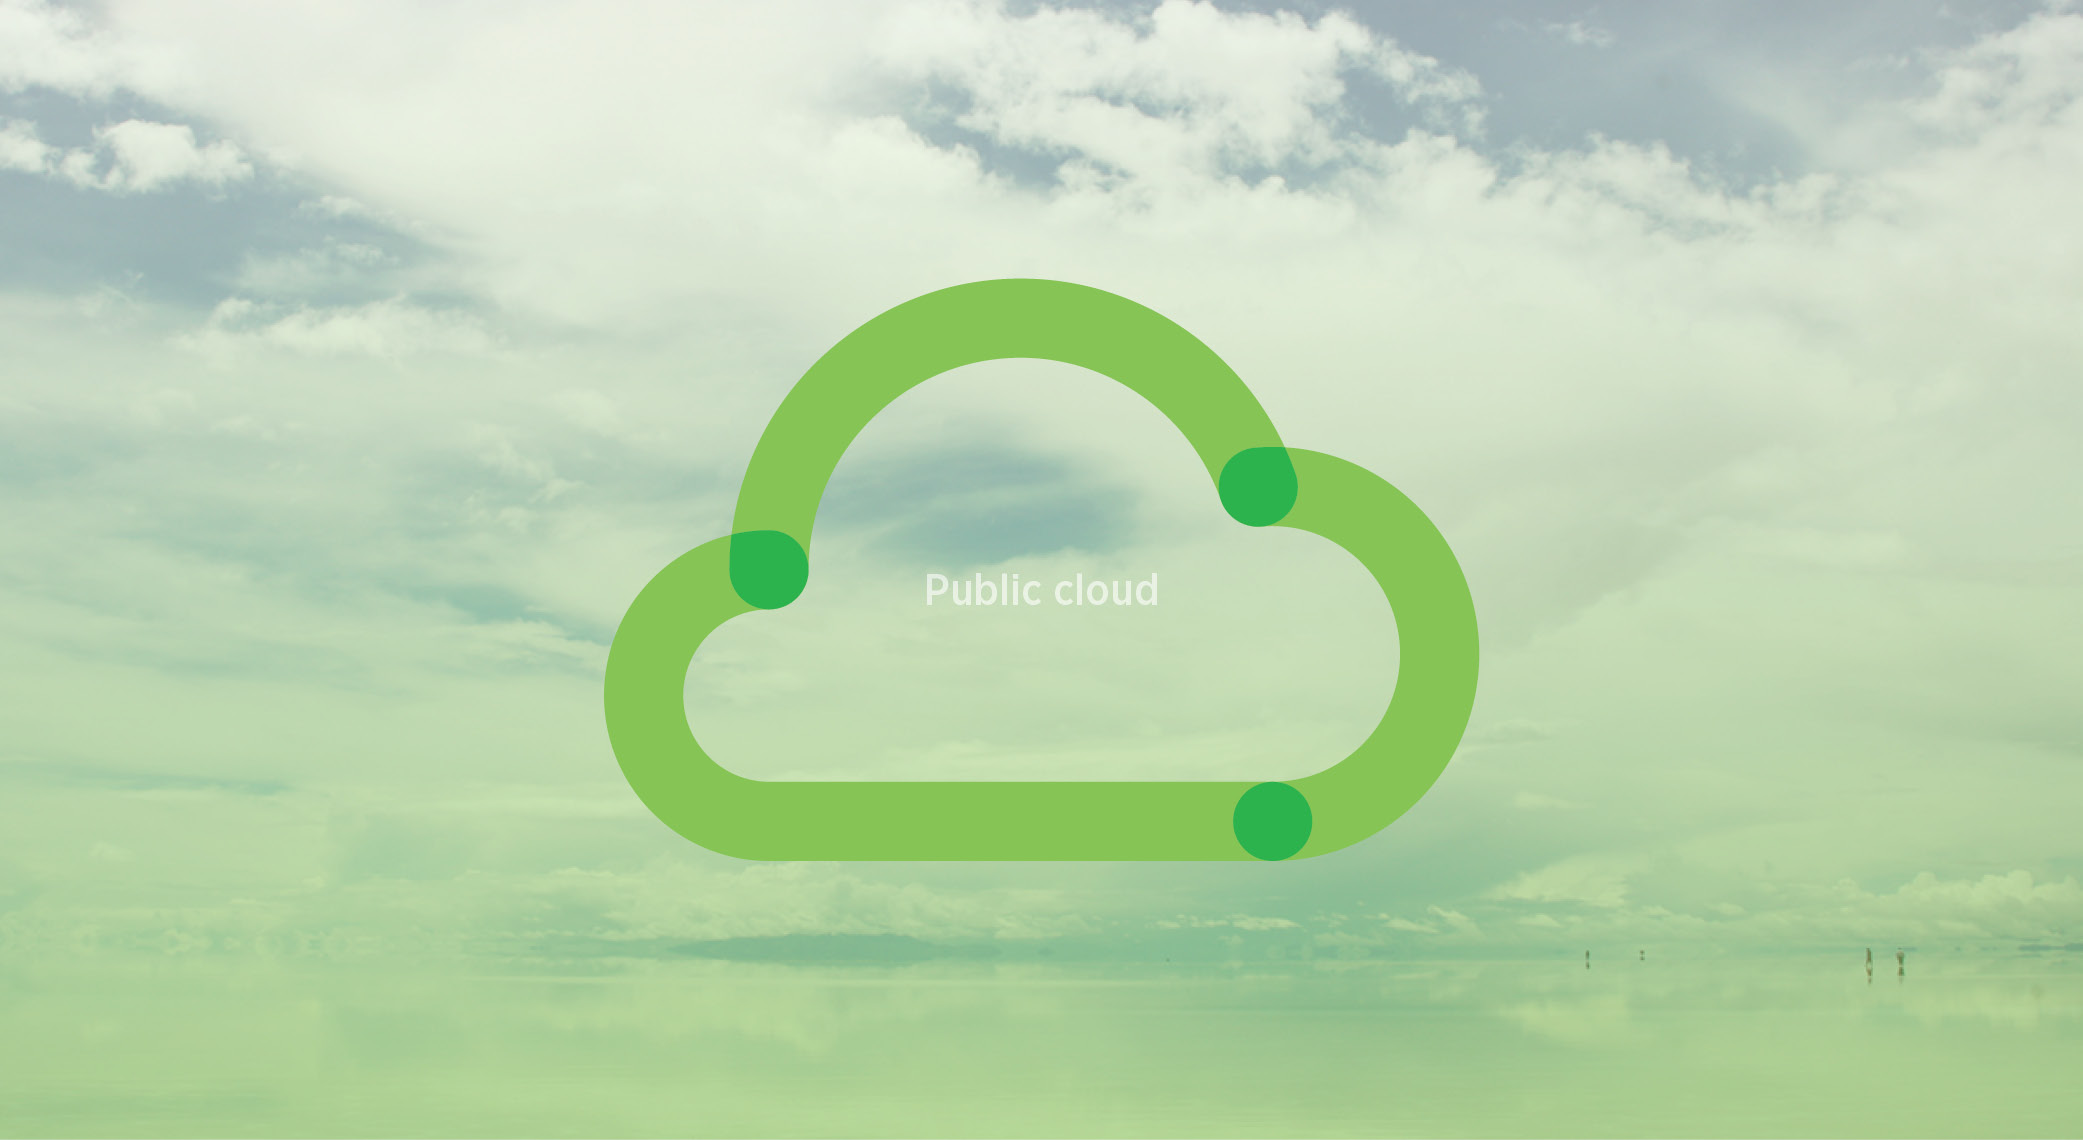 Kind of cloud-Public cloud